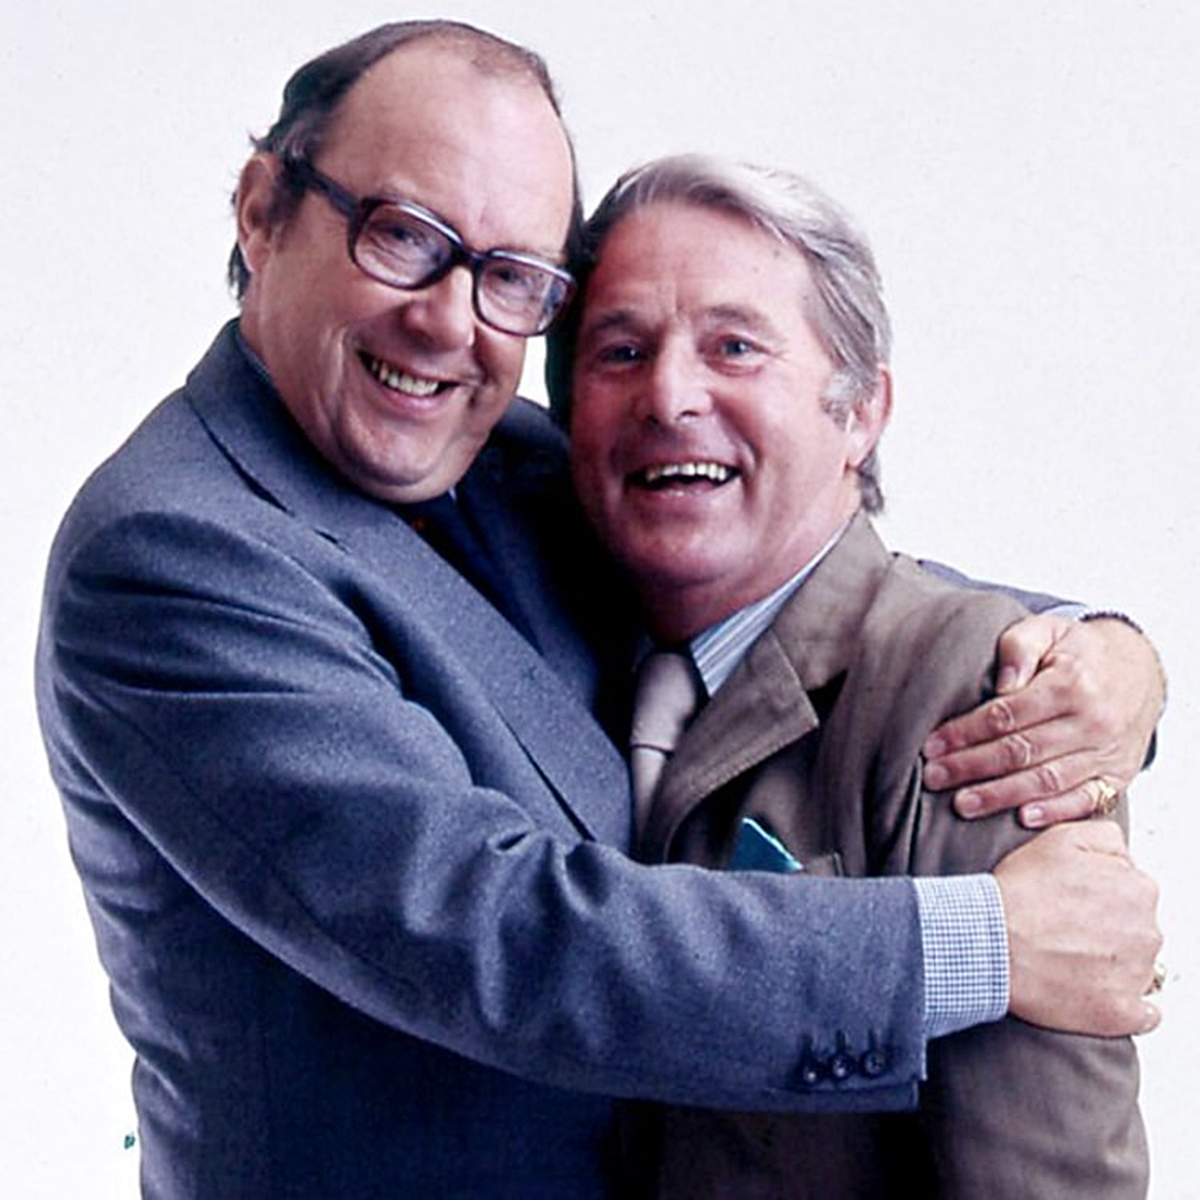 INTRO1 4 10 British Comedy Stars Who Ended Up Hating Each Other